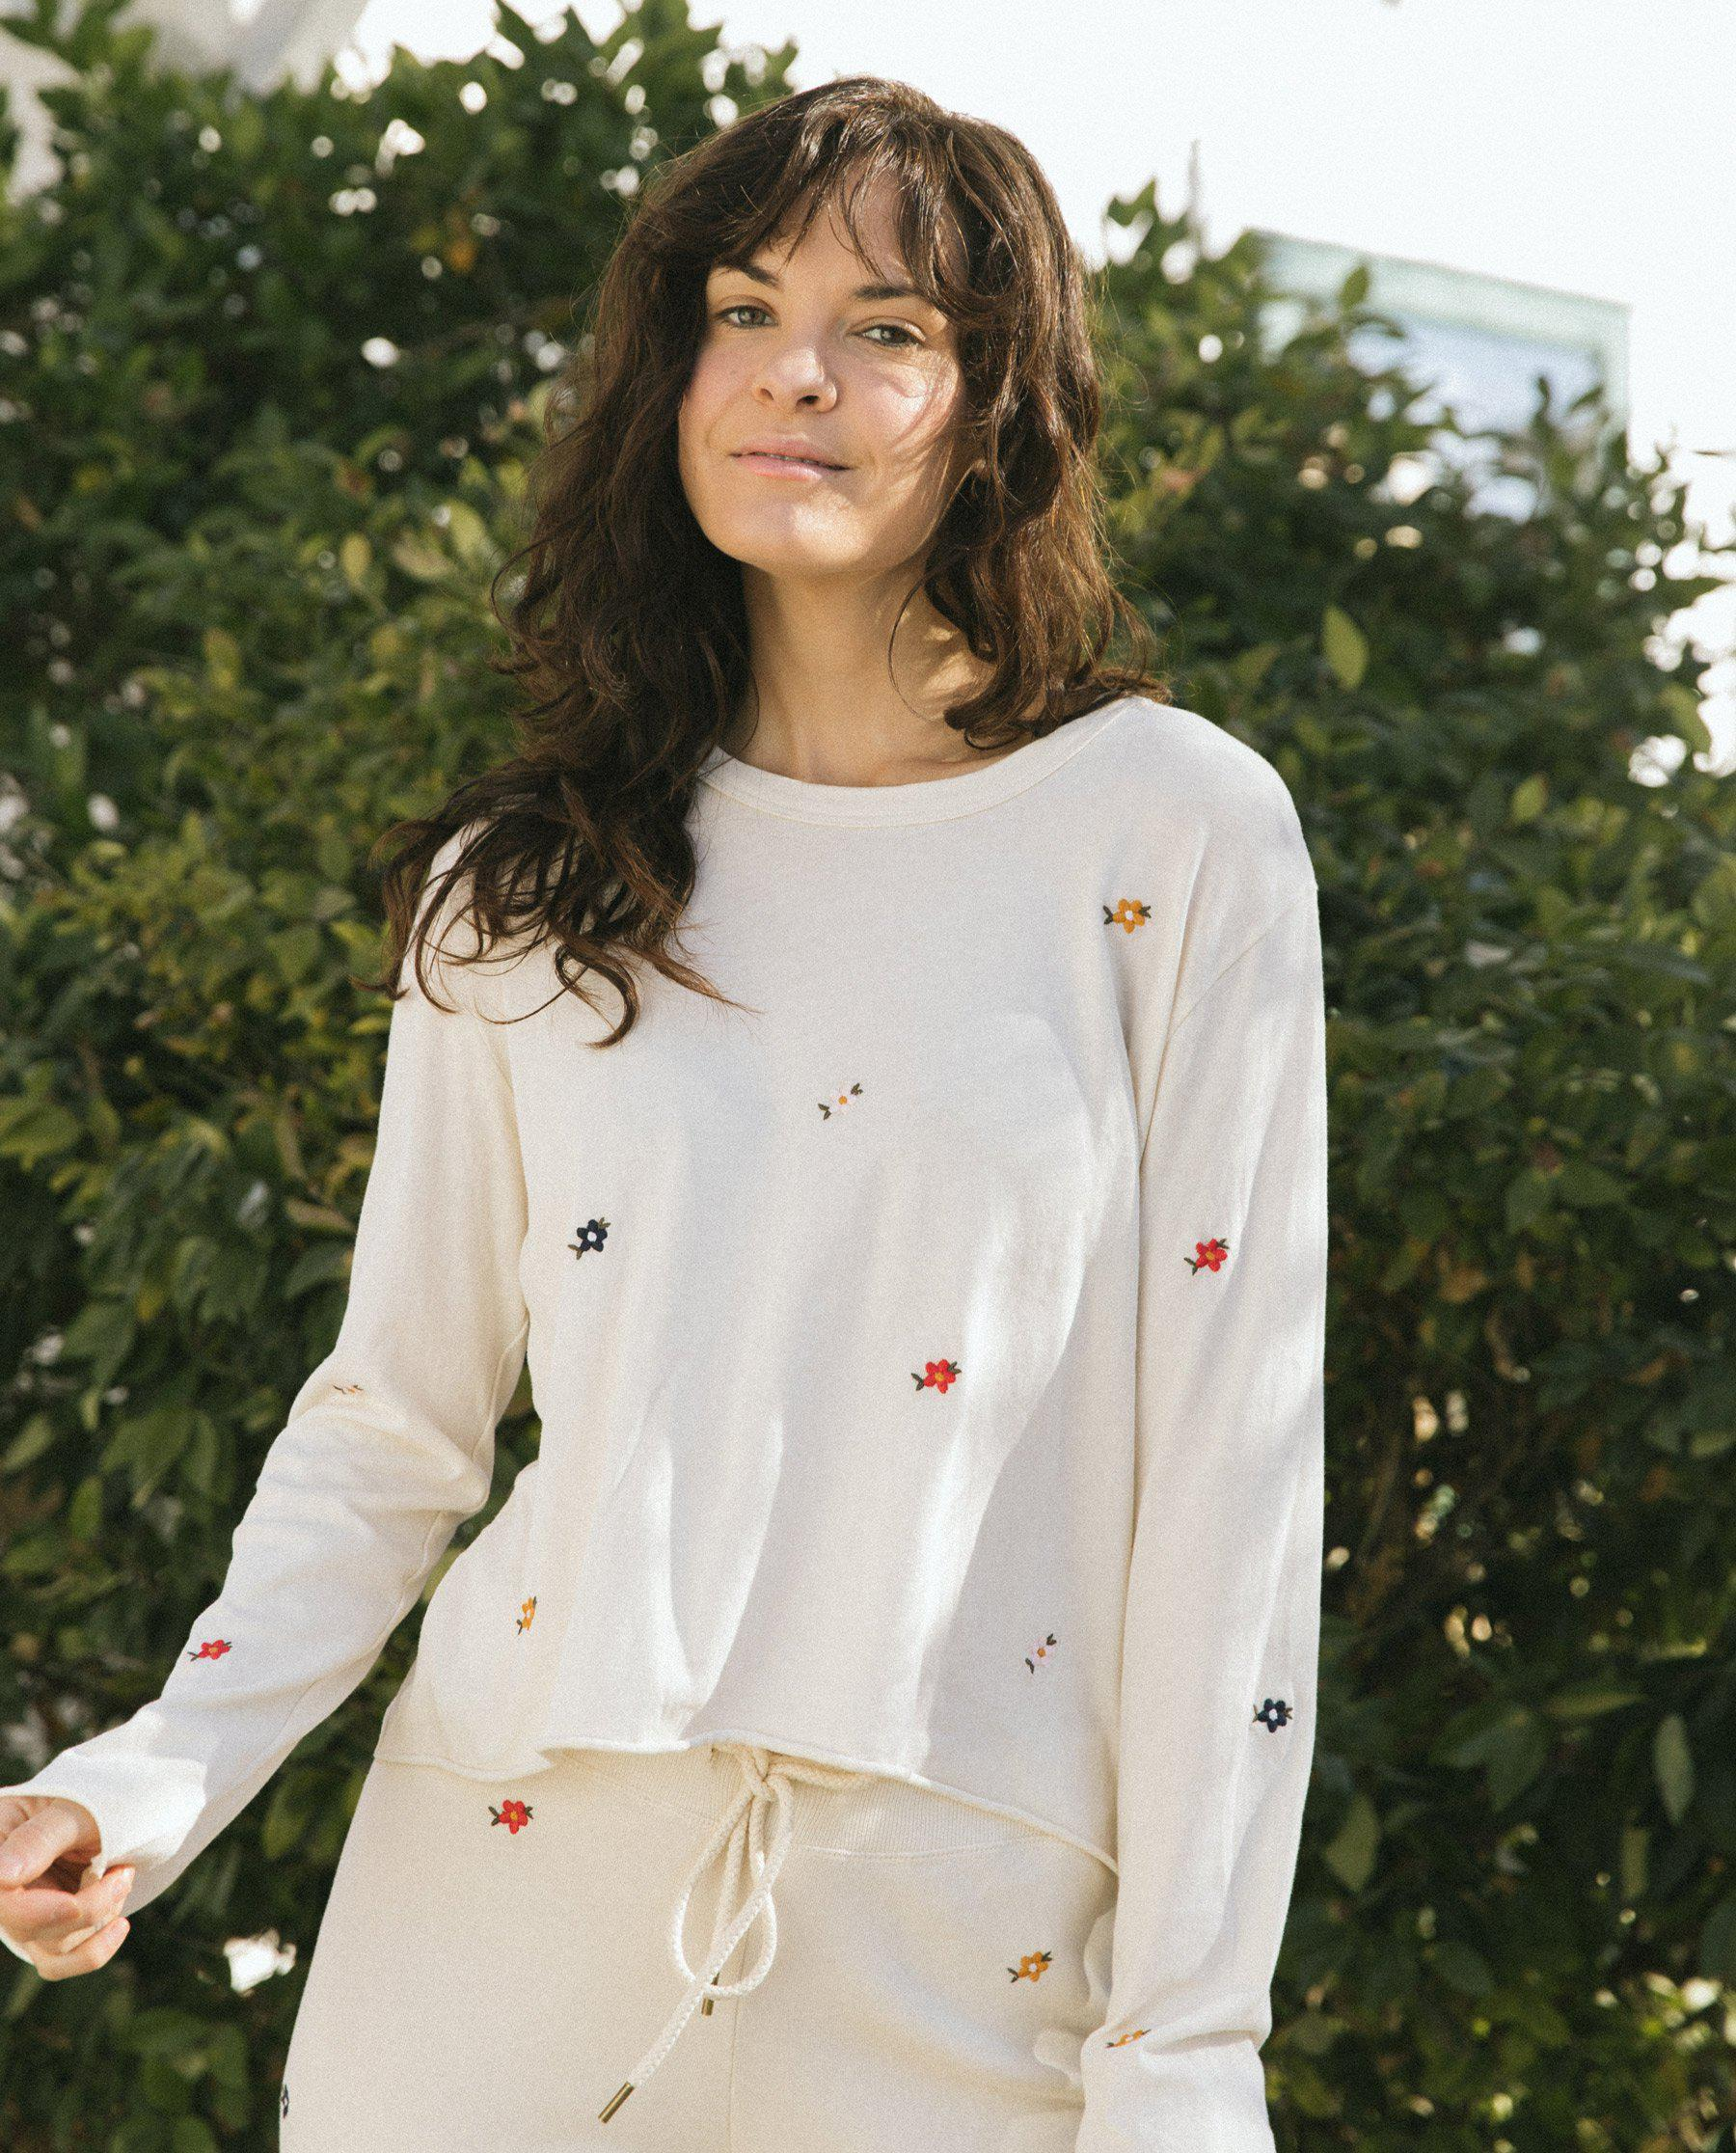 The Long Sleeve Crop Tee. -- Washed White with Seed Floral Embroidery